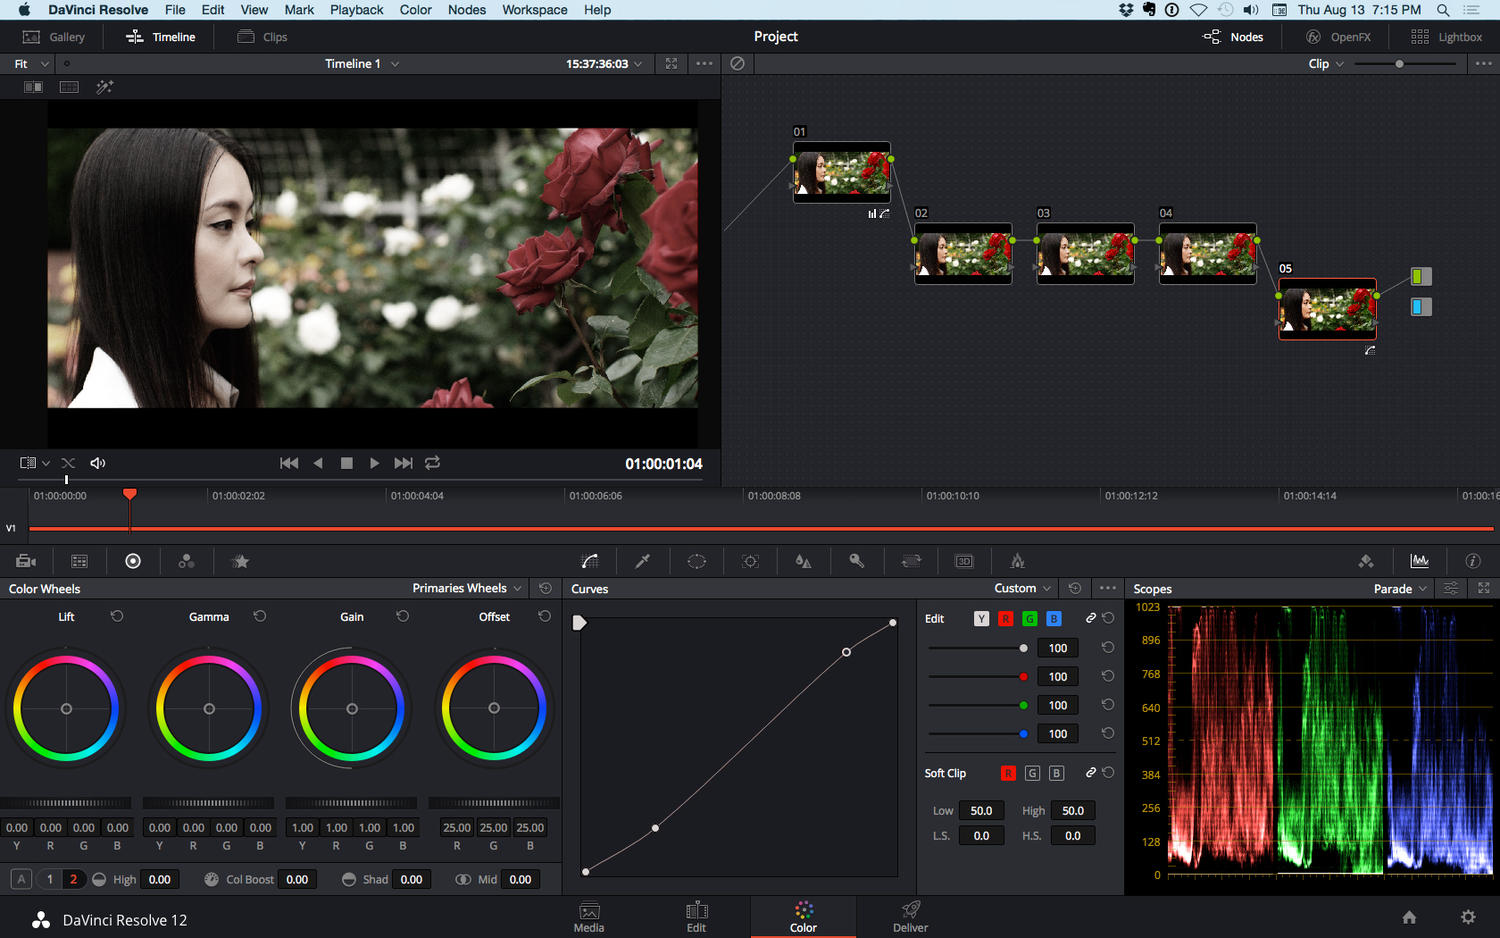 Professional Video Color Grading by GuidoDesign - 85666